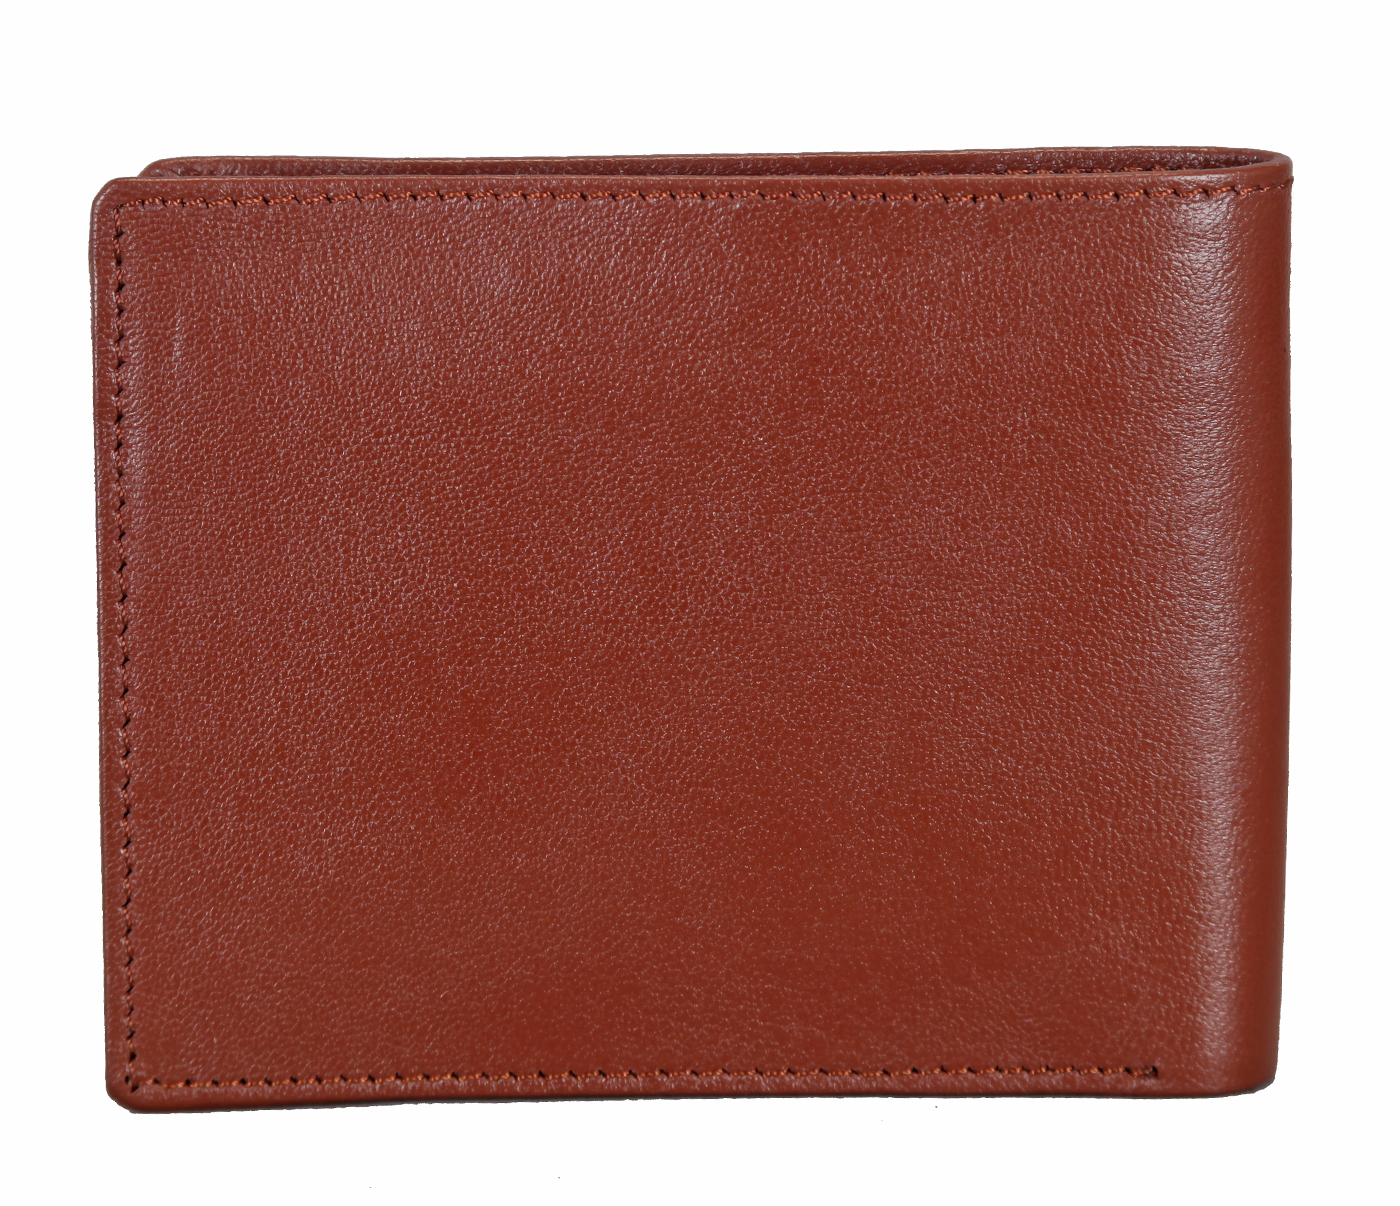 W256-Hudson-Men's bifold wallet with coin pocket in Genuine Leather - Tan